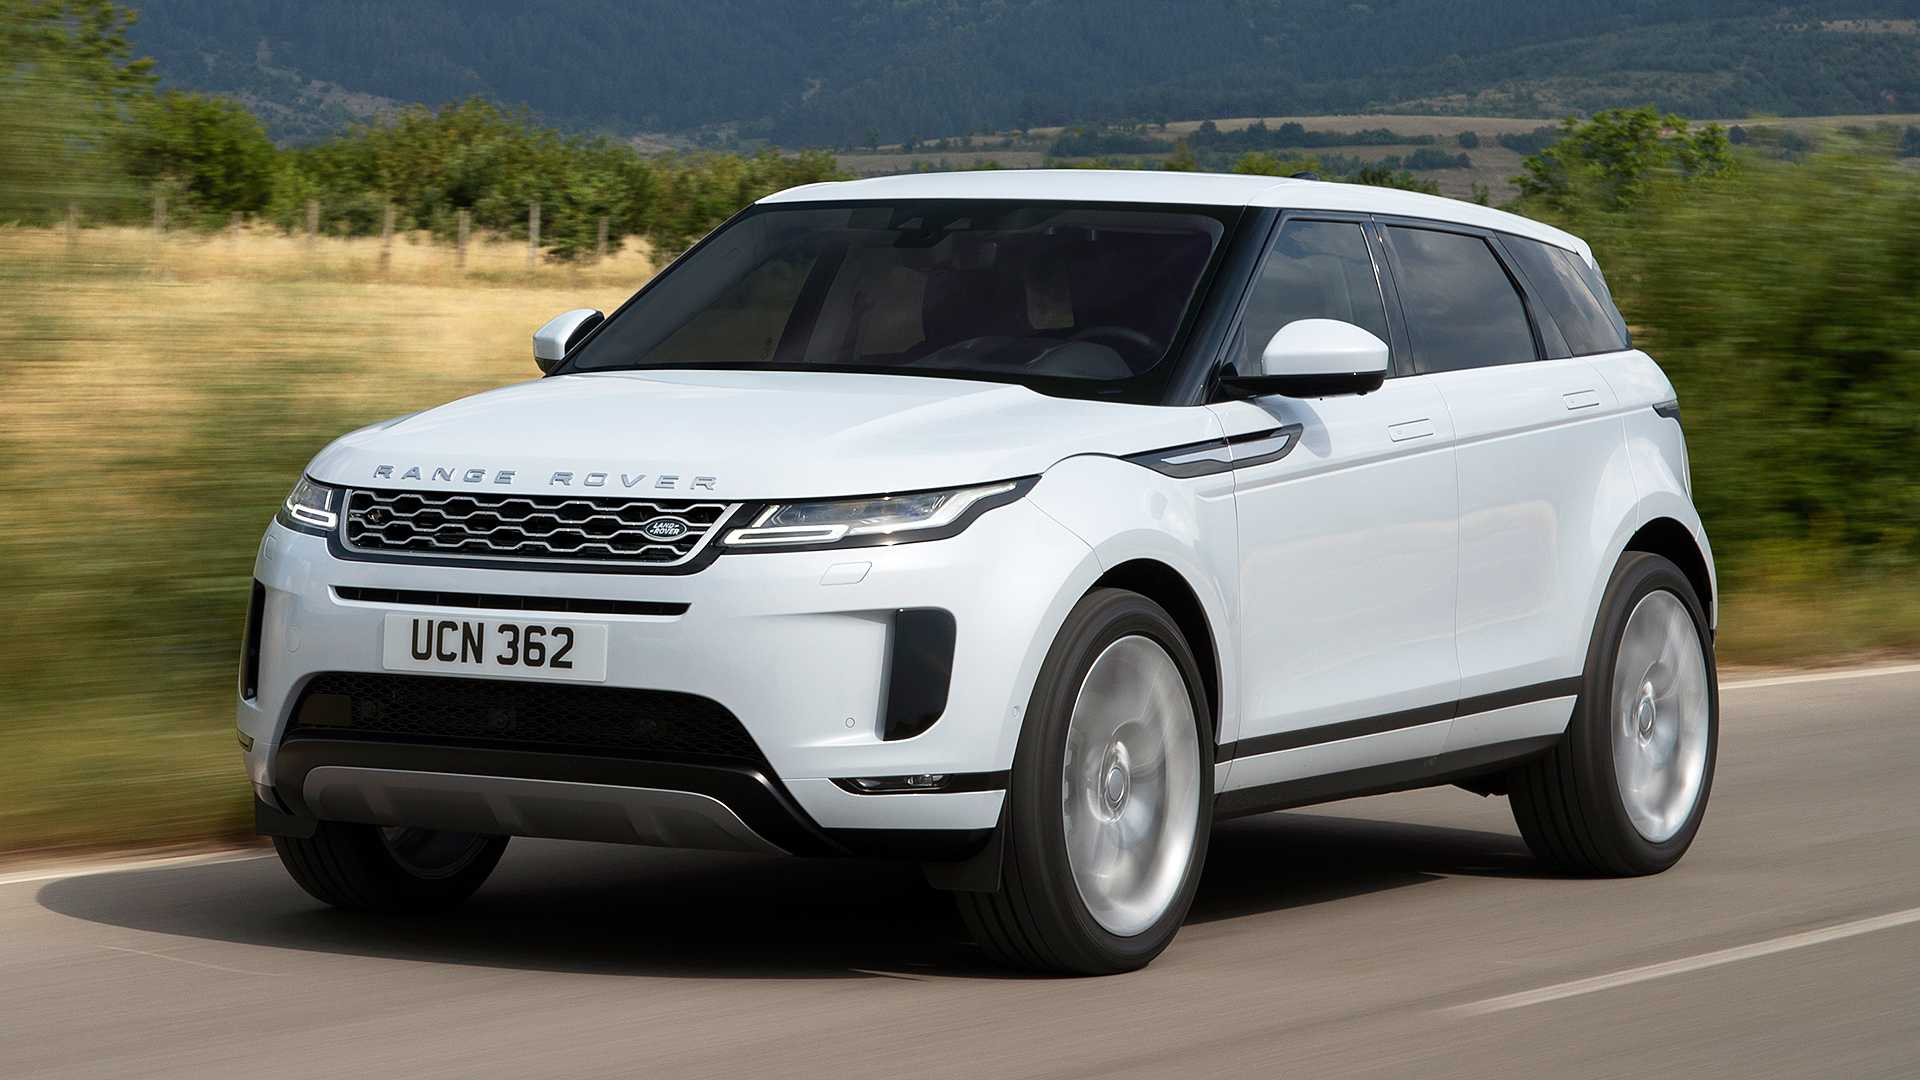 71 Great New Jaguar Land Rover Holidays 2019 Specs Images by New Jaguar Land Rover Holidays 2019 Specs